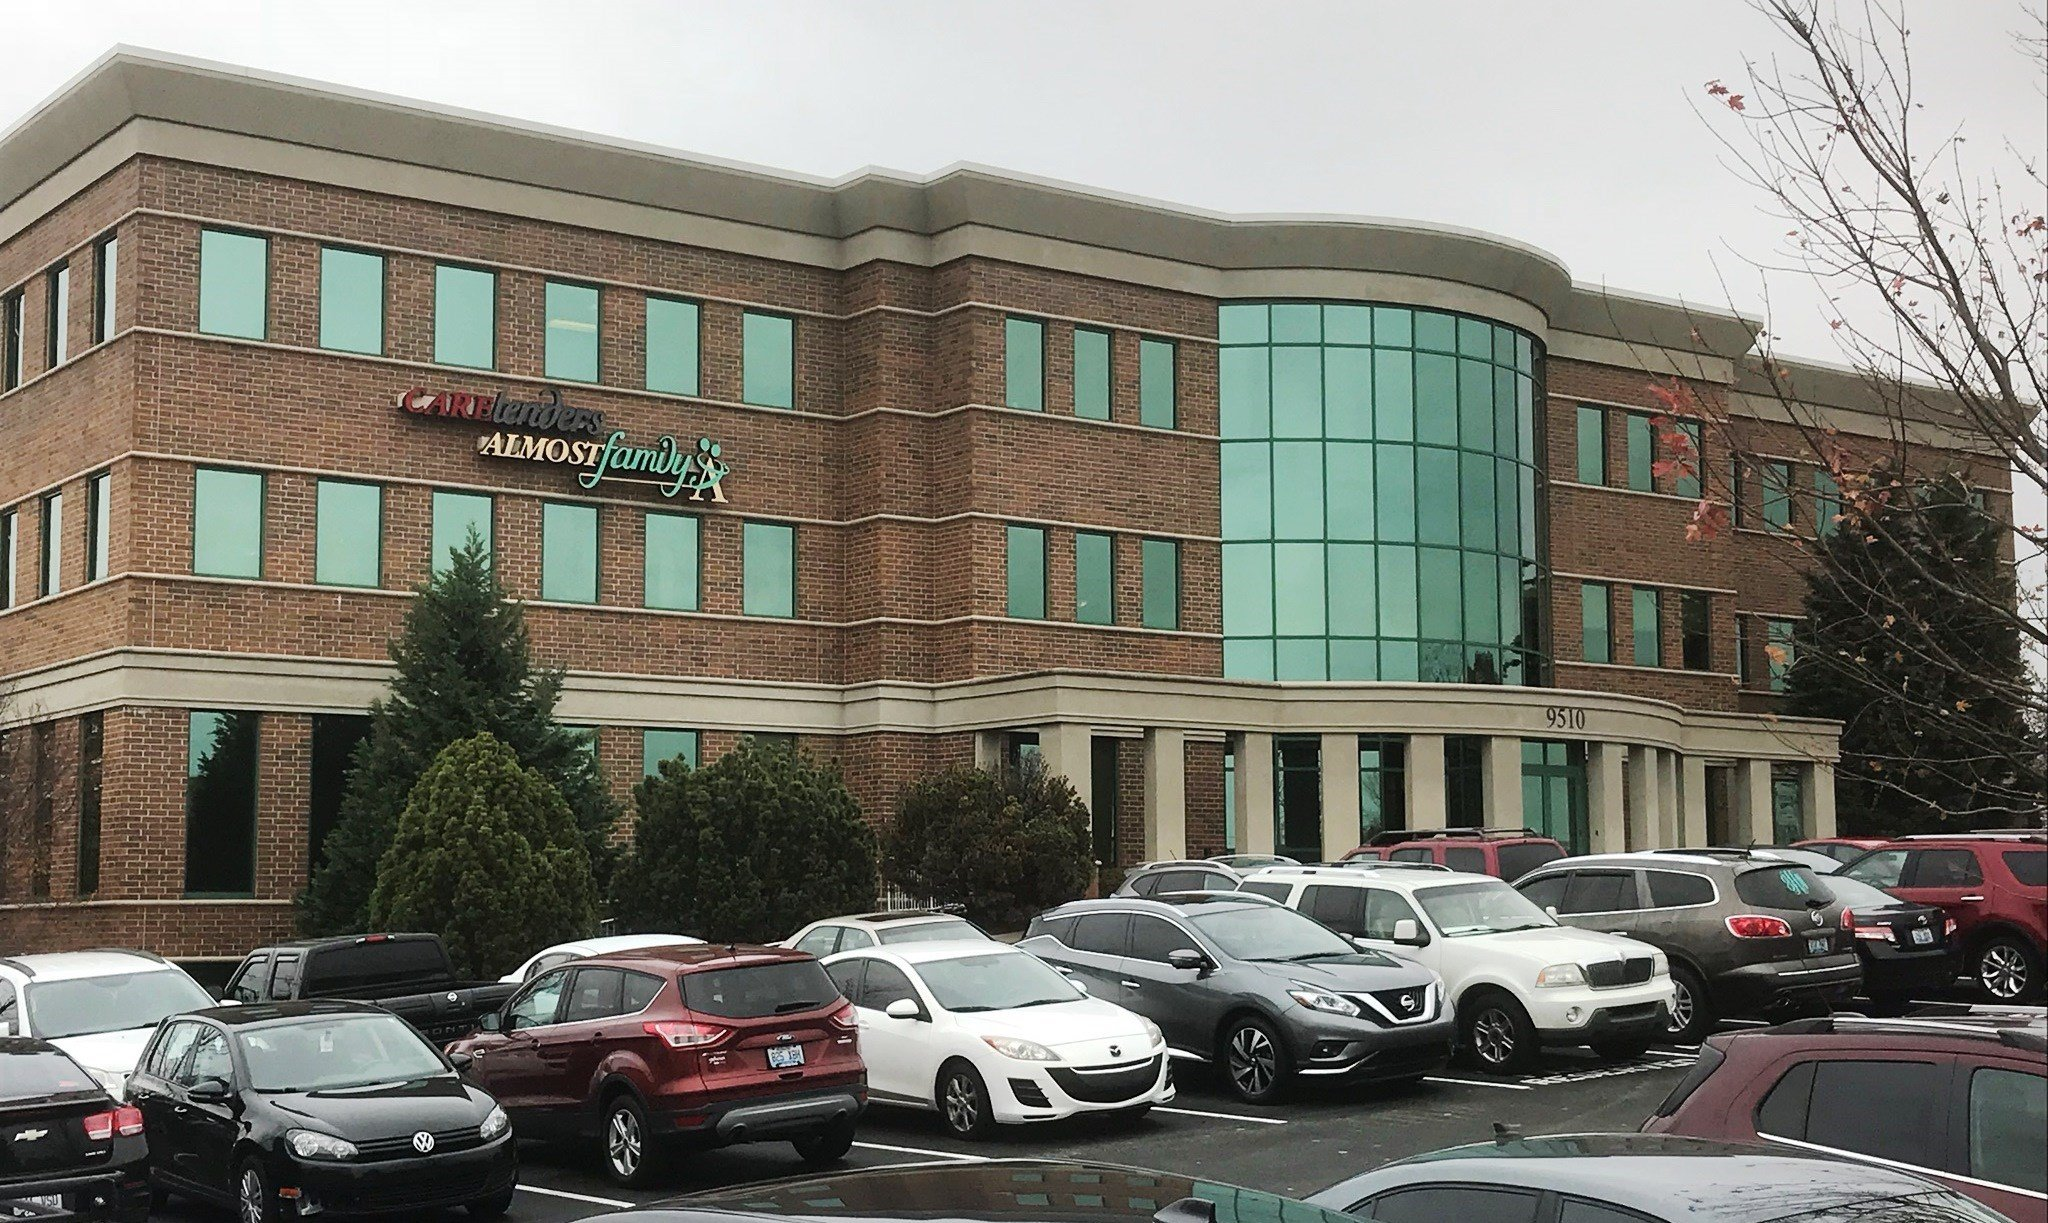 Louisville-based Almost Family to merge with bigger competitor